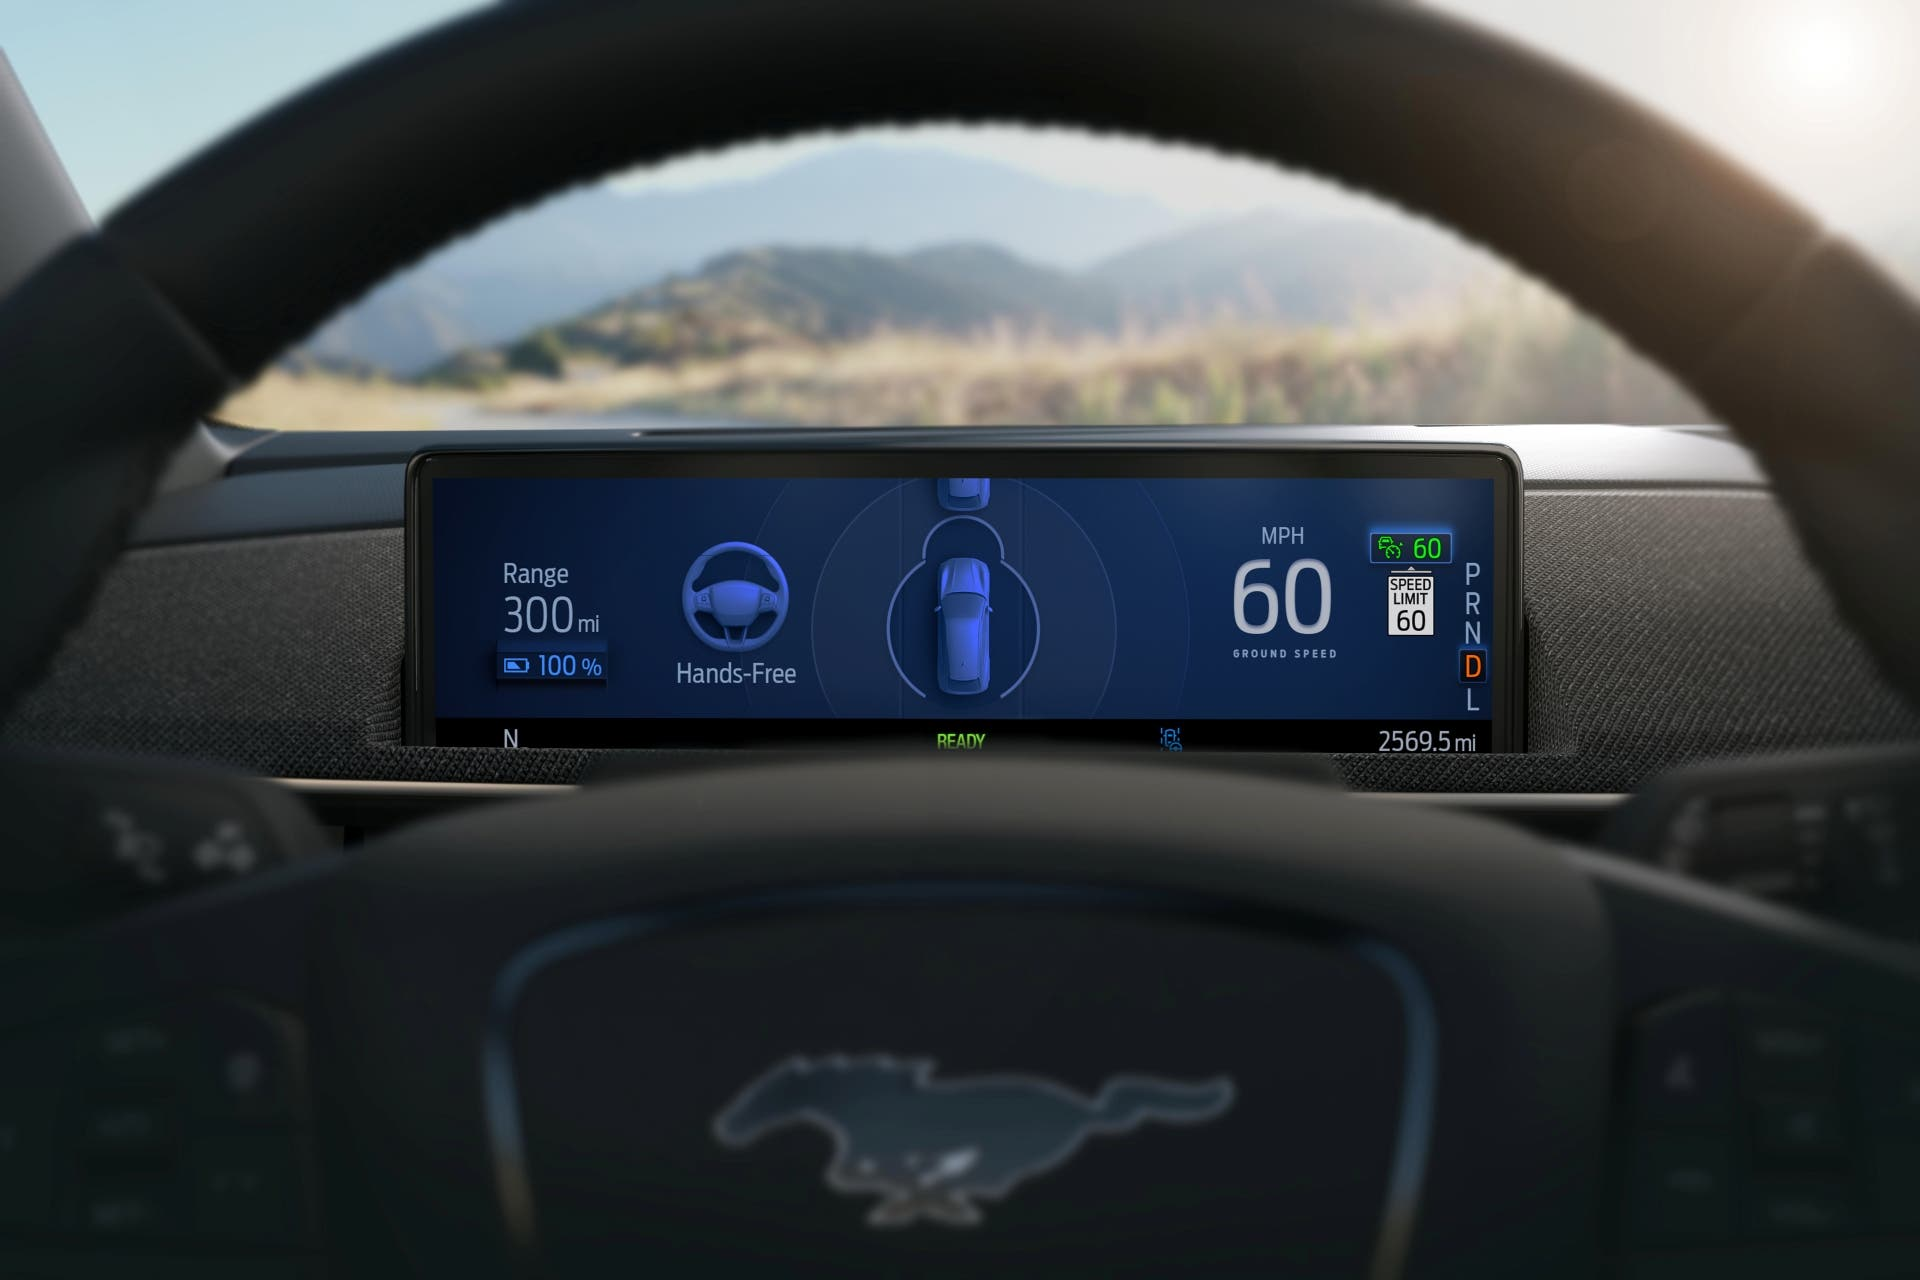 Ford Mustang Mach-E Active Drive Assist human-machine interface